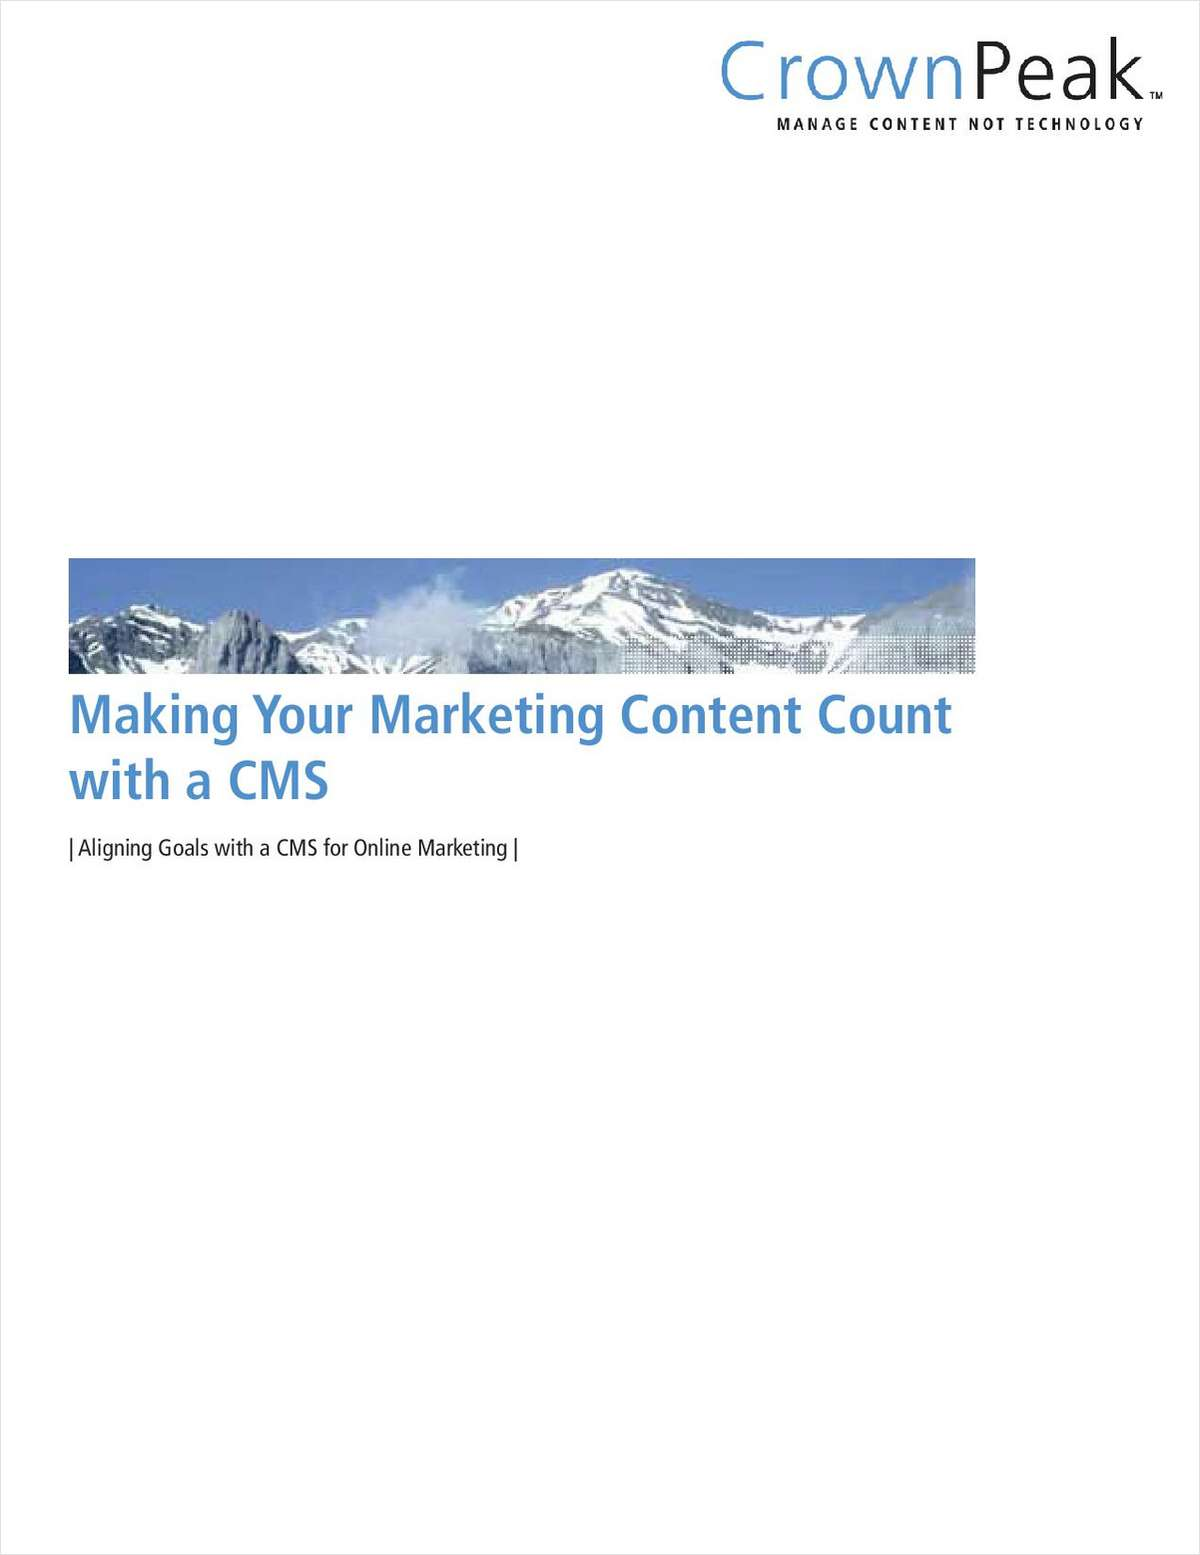 Making Your Marketing Content Count with a CMS